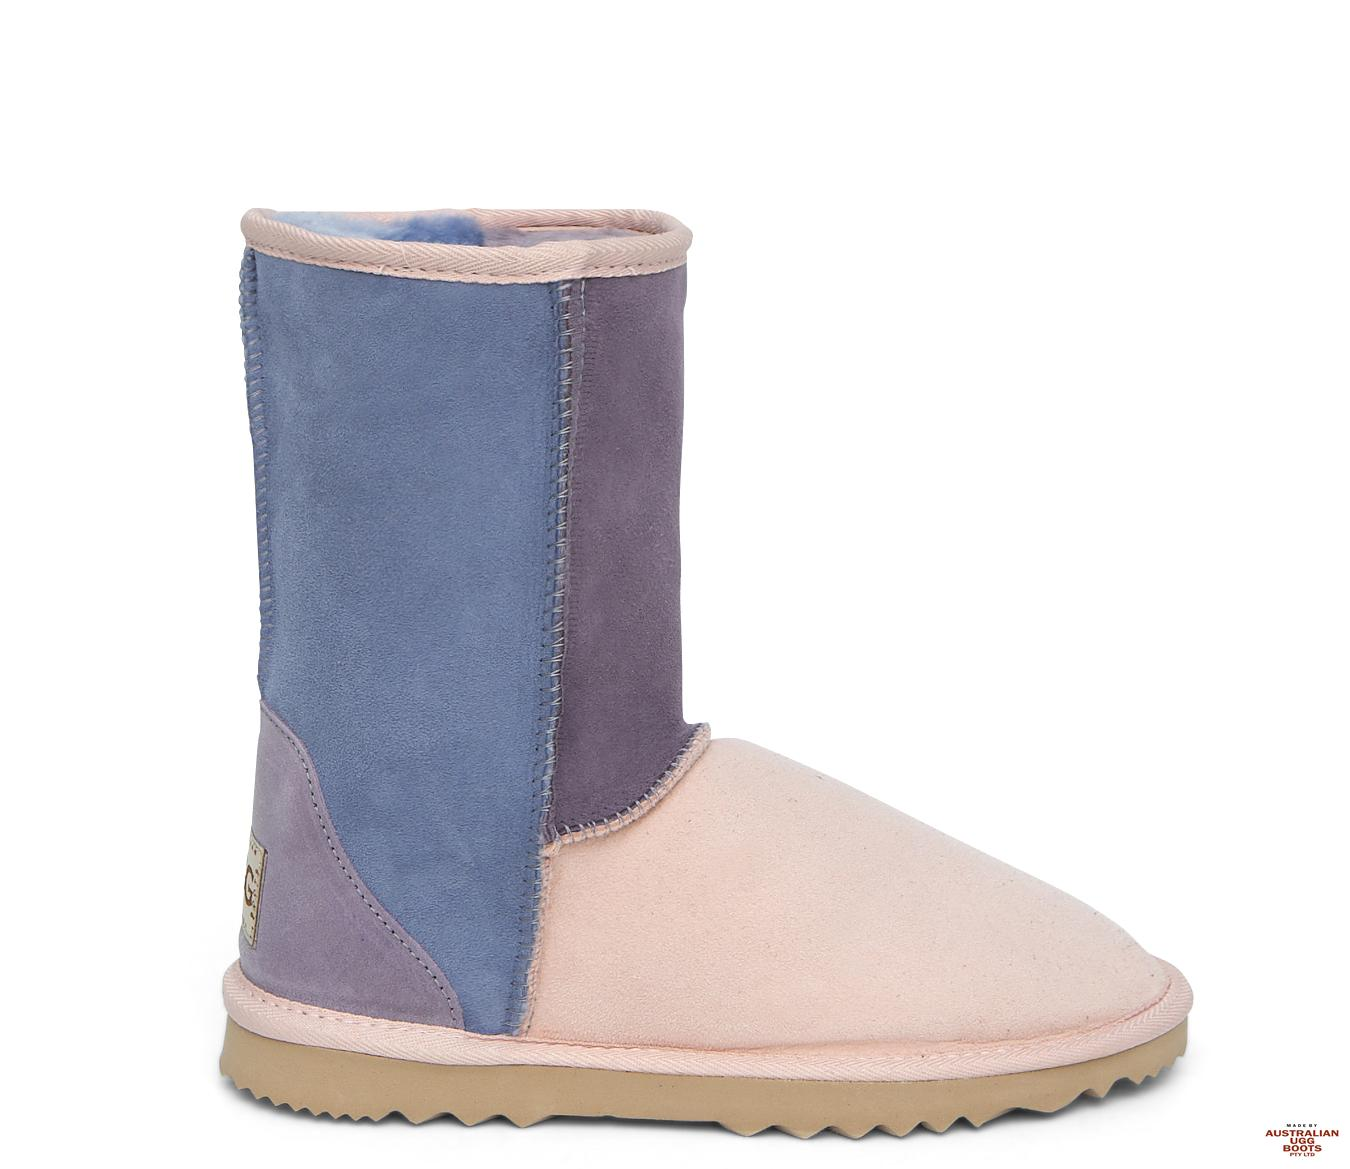 0a462517bf6 Harmony Short Ugg Boots